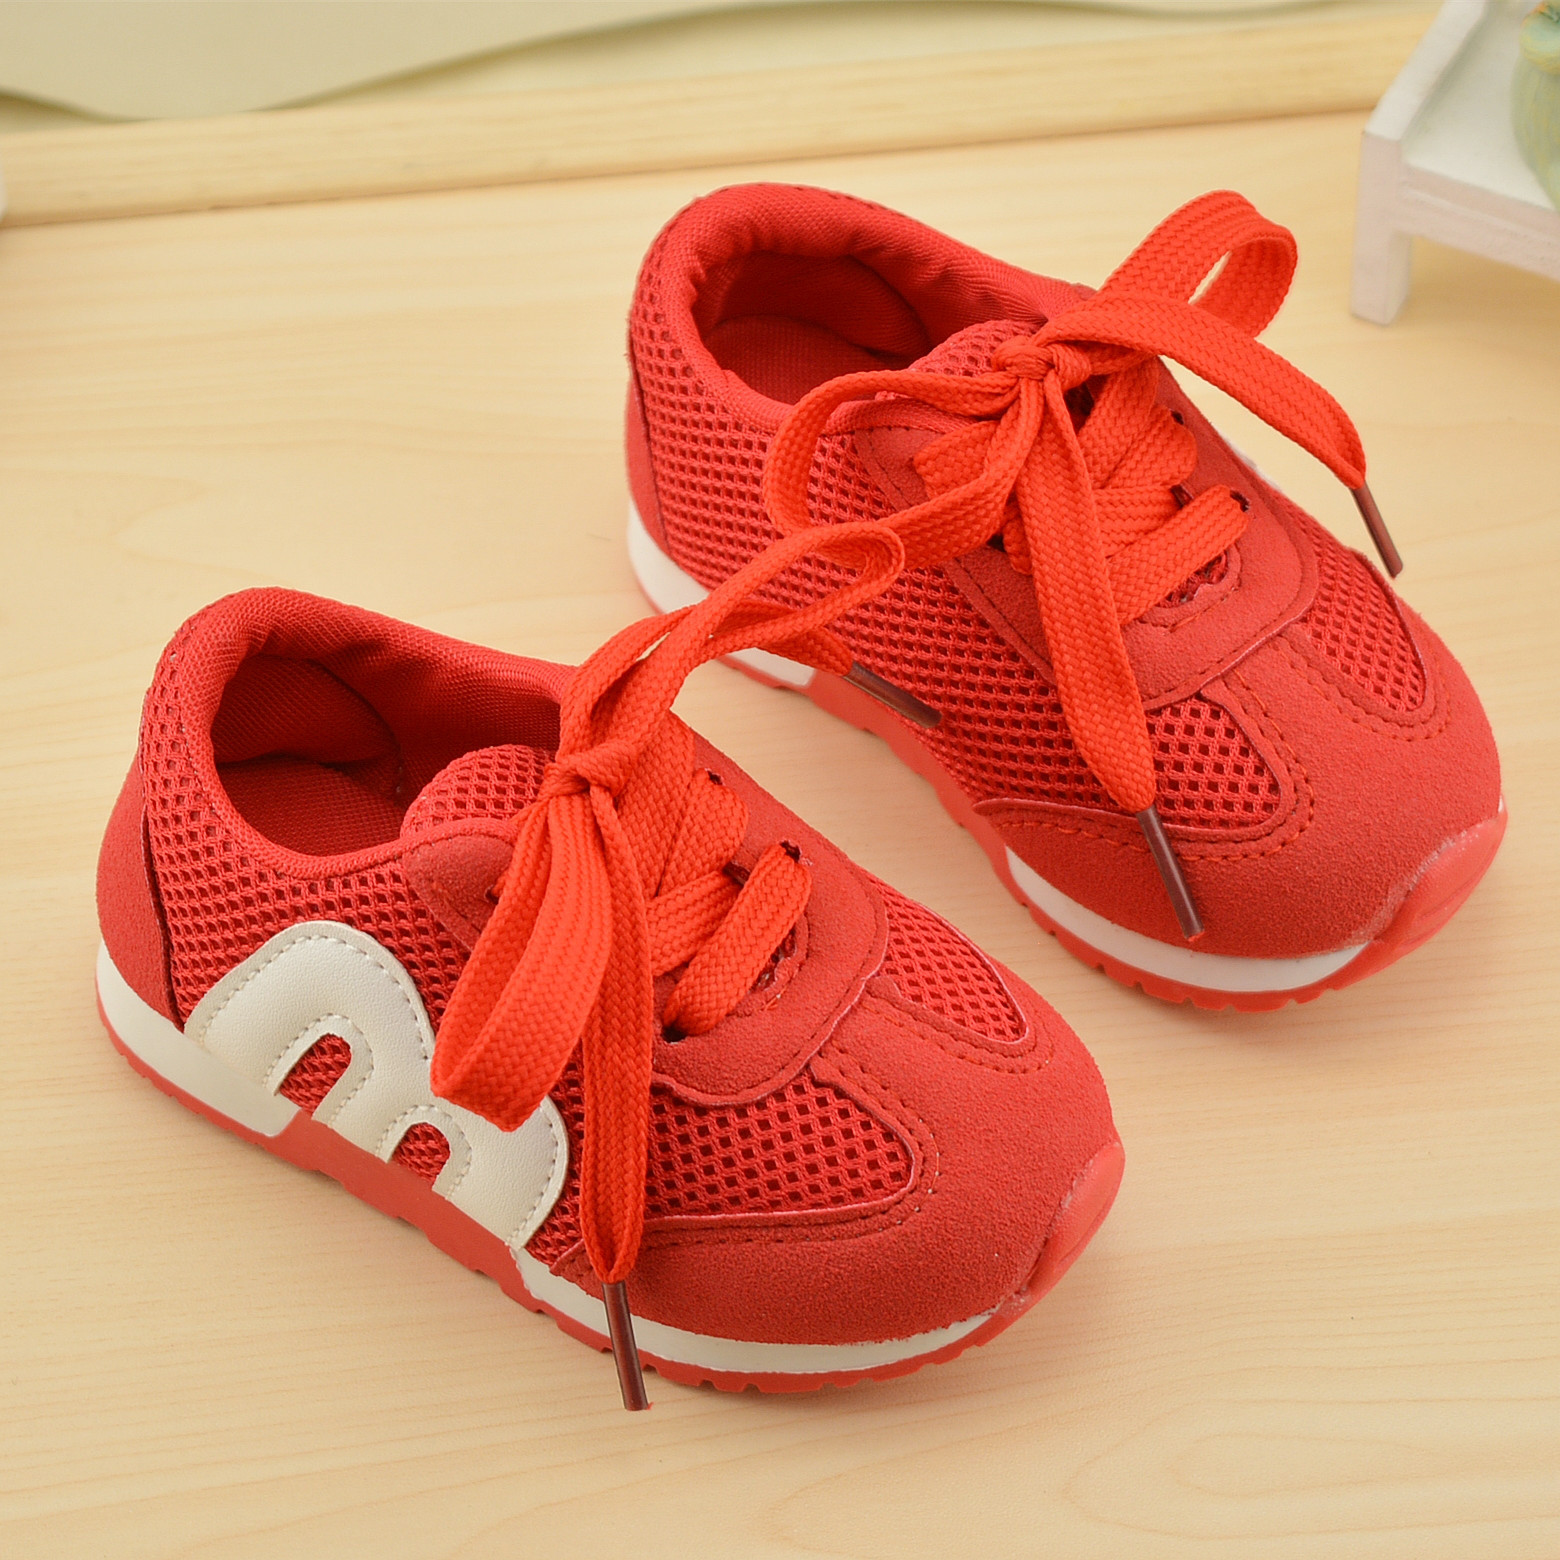 2018 Casual Kids Mesh Shoes Letter M Soft Bottom Baby Shoes Boys